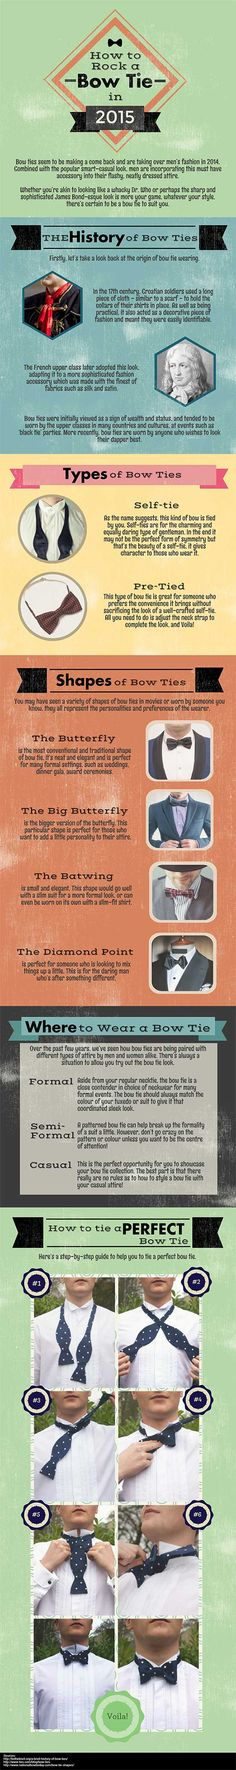 new #infographic about bow ties http://www.cefashion.net/infographic-how-to-rock-a-bow-tie-in-2015 #bowties